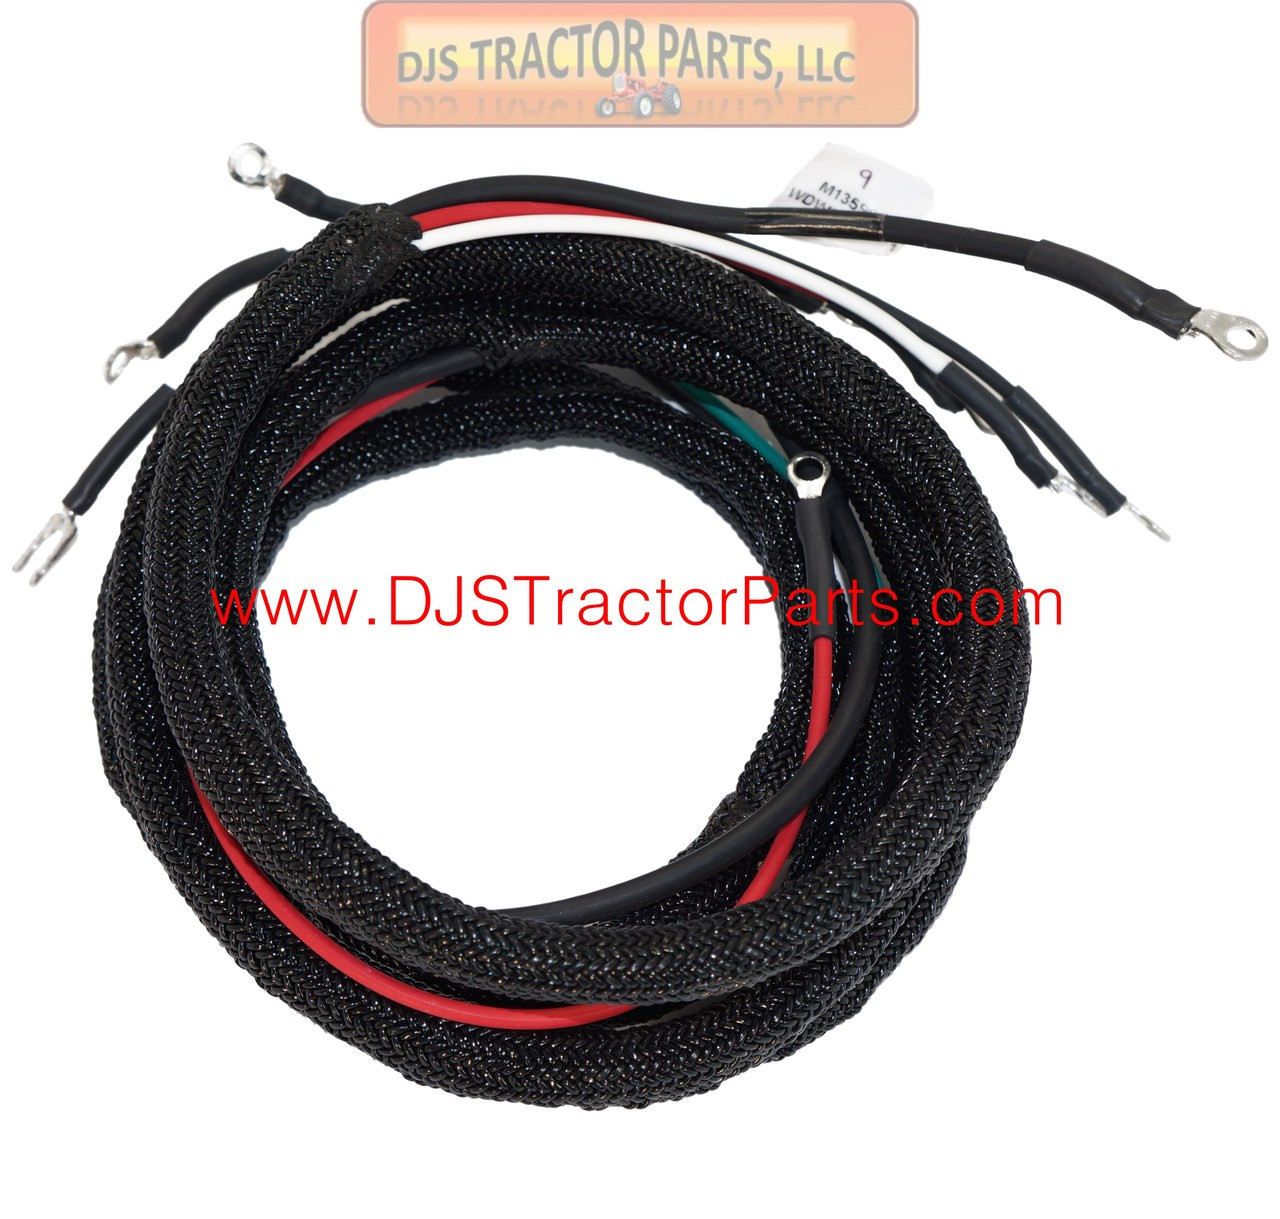 hight resolution of main wiring harness allis chalmers wd wd45 acr4766 djs tractor parts llc